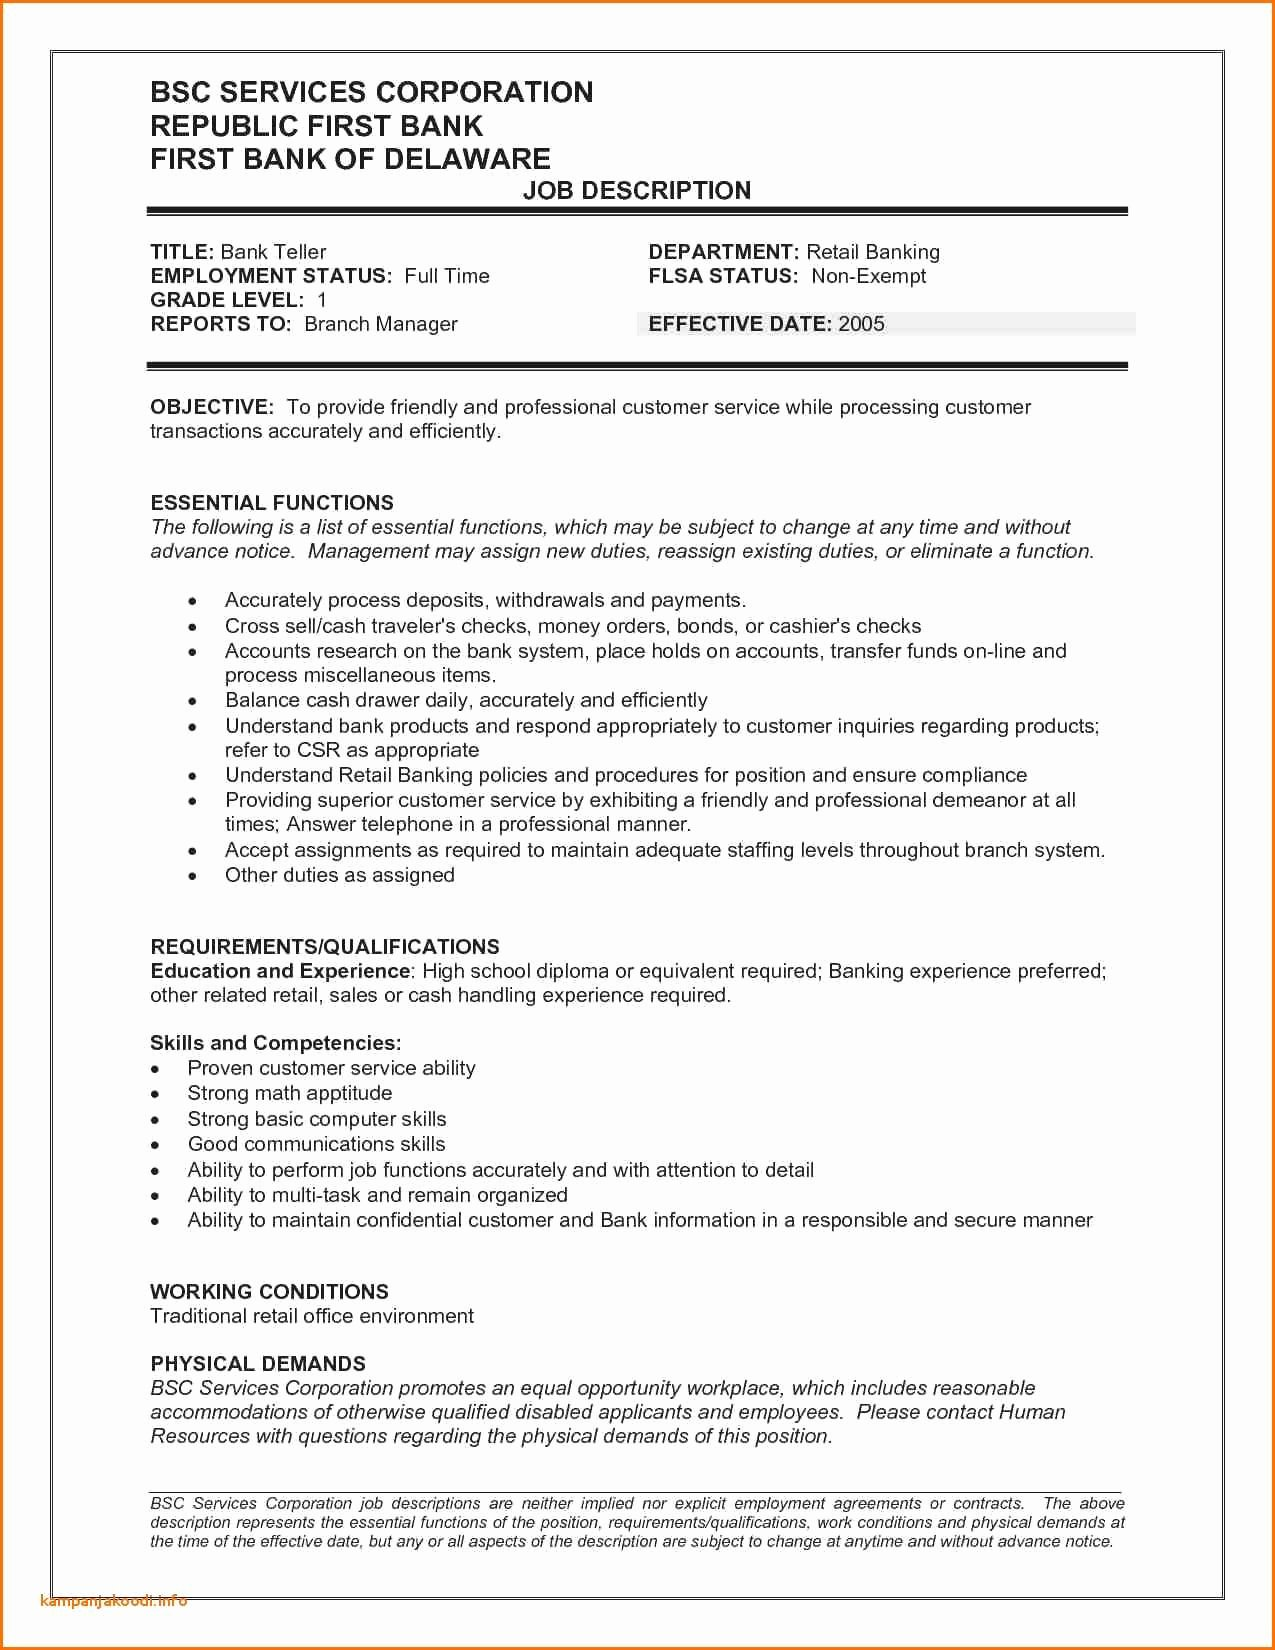 Resume Qualifications Hat Skills to Put A Resume